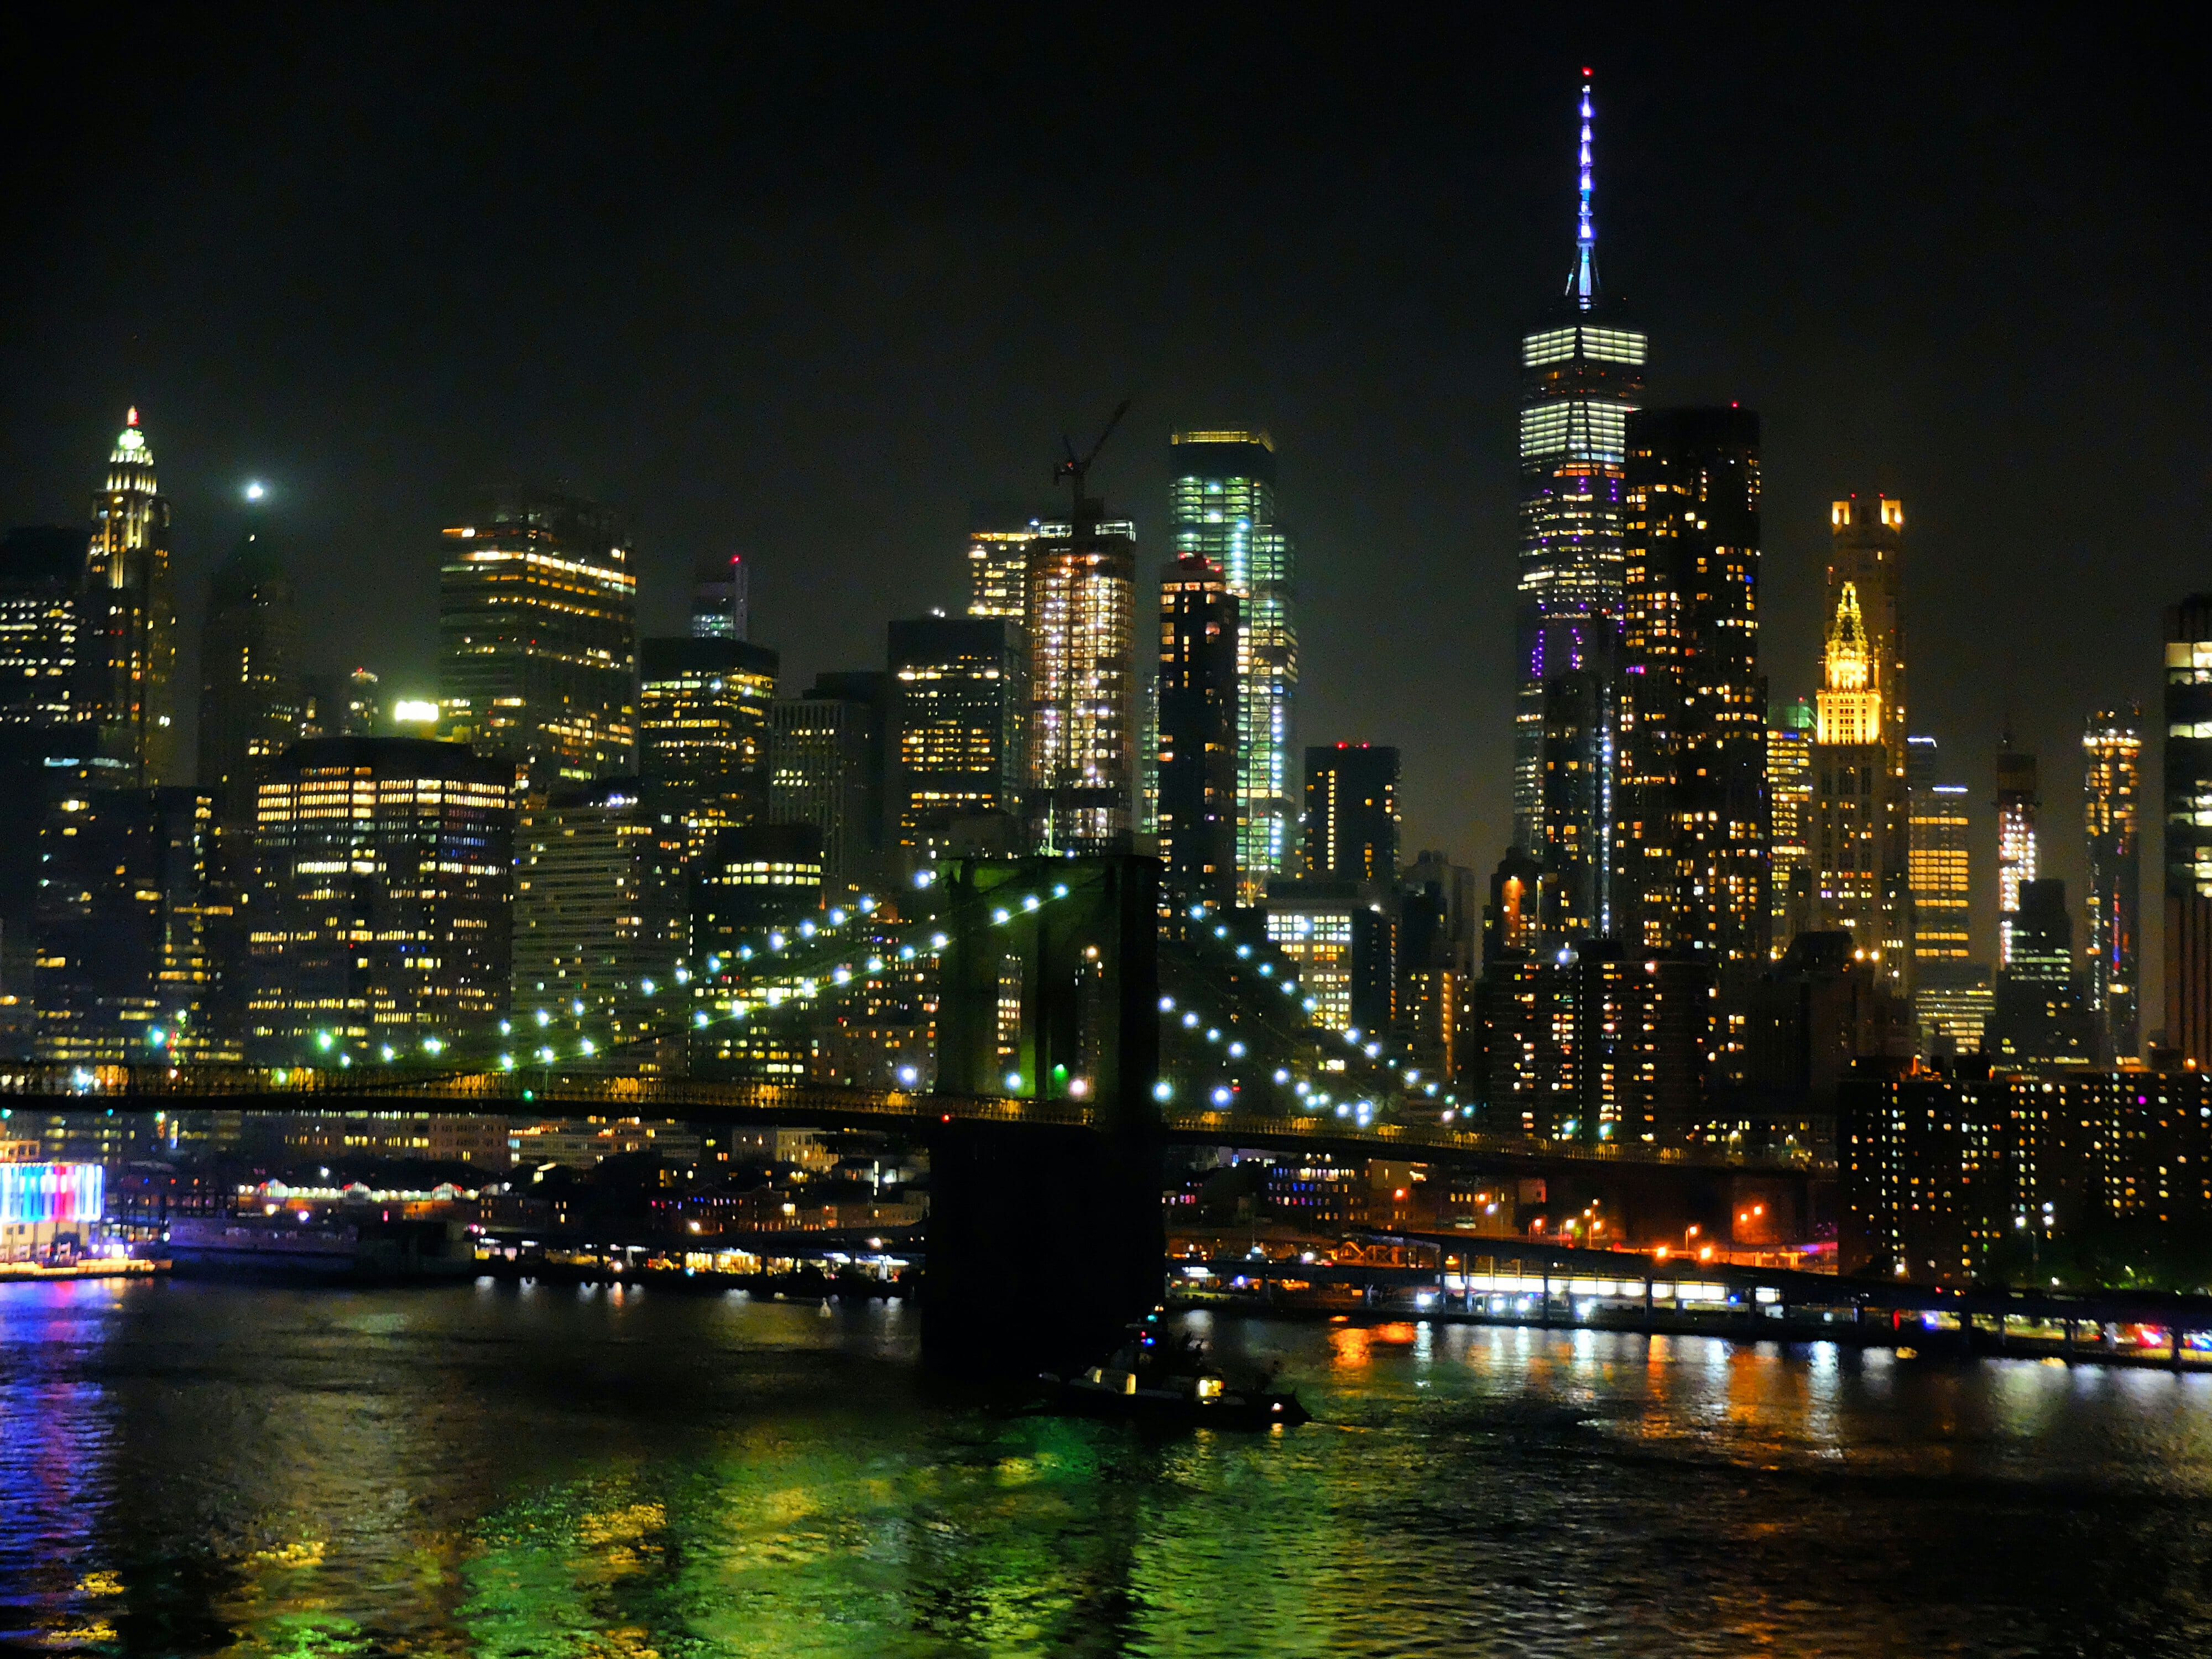 New York Skyline at Night – High Quality Wallpaper